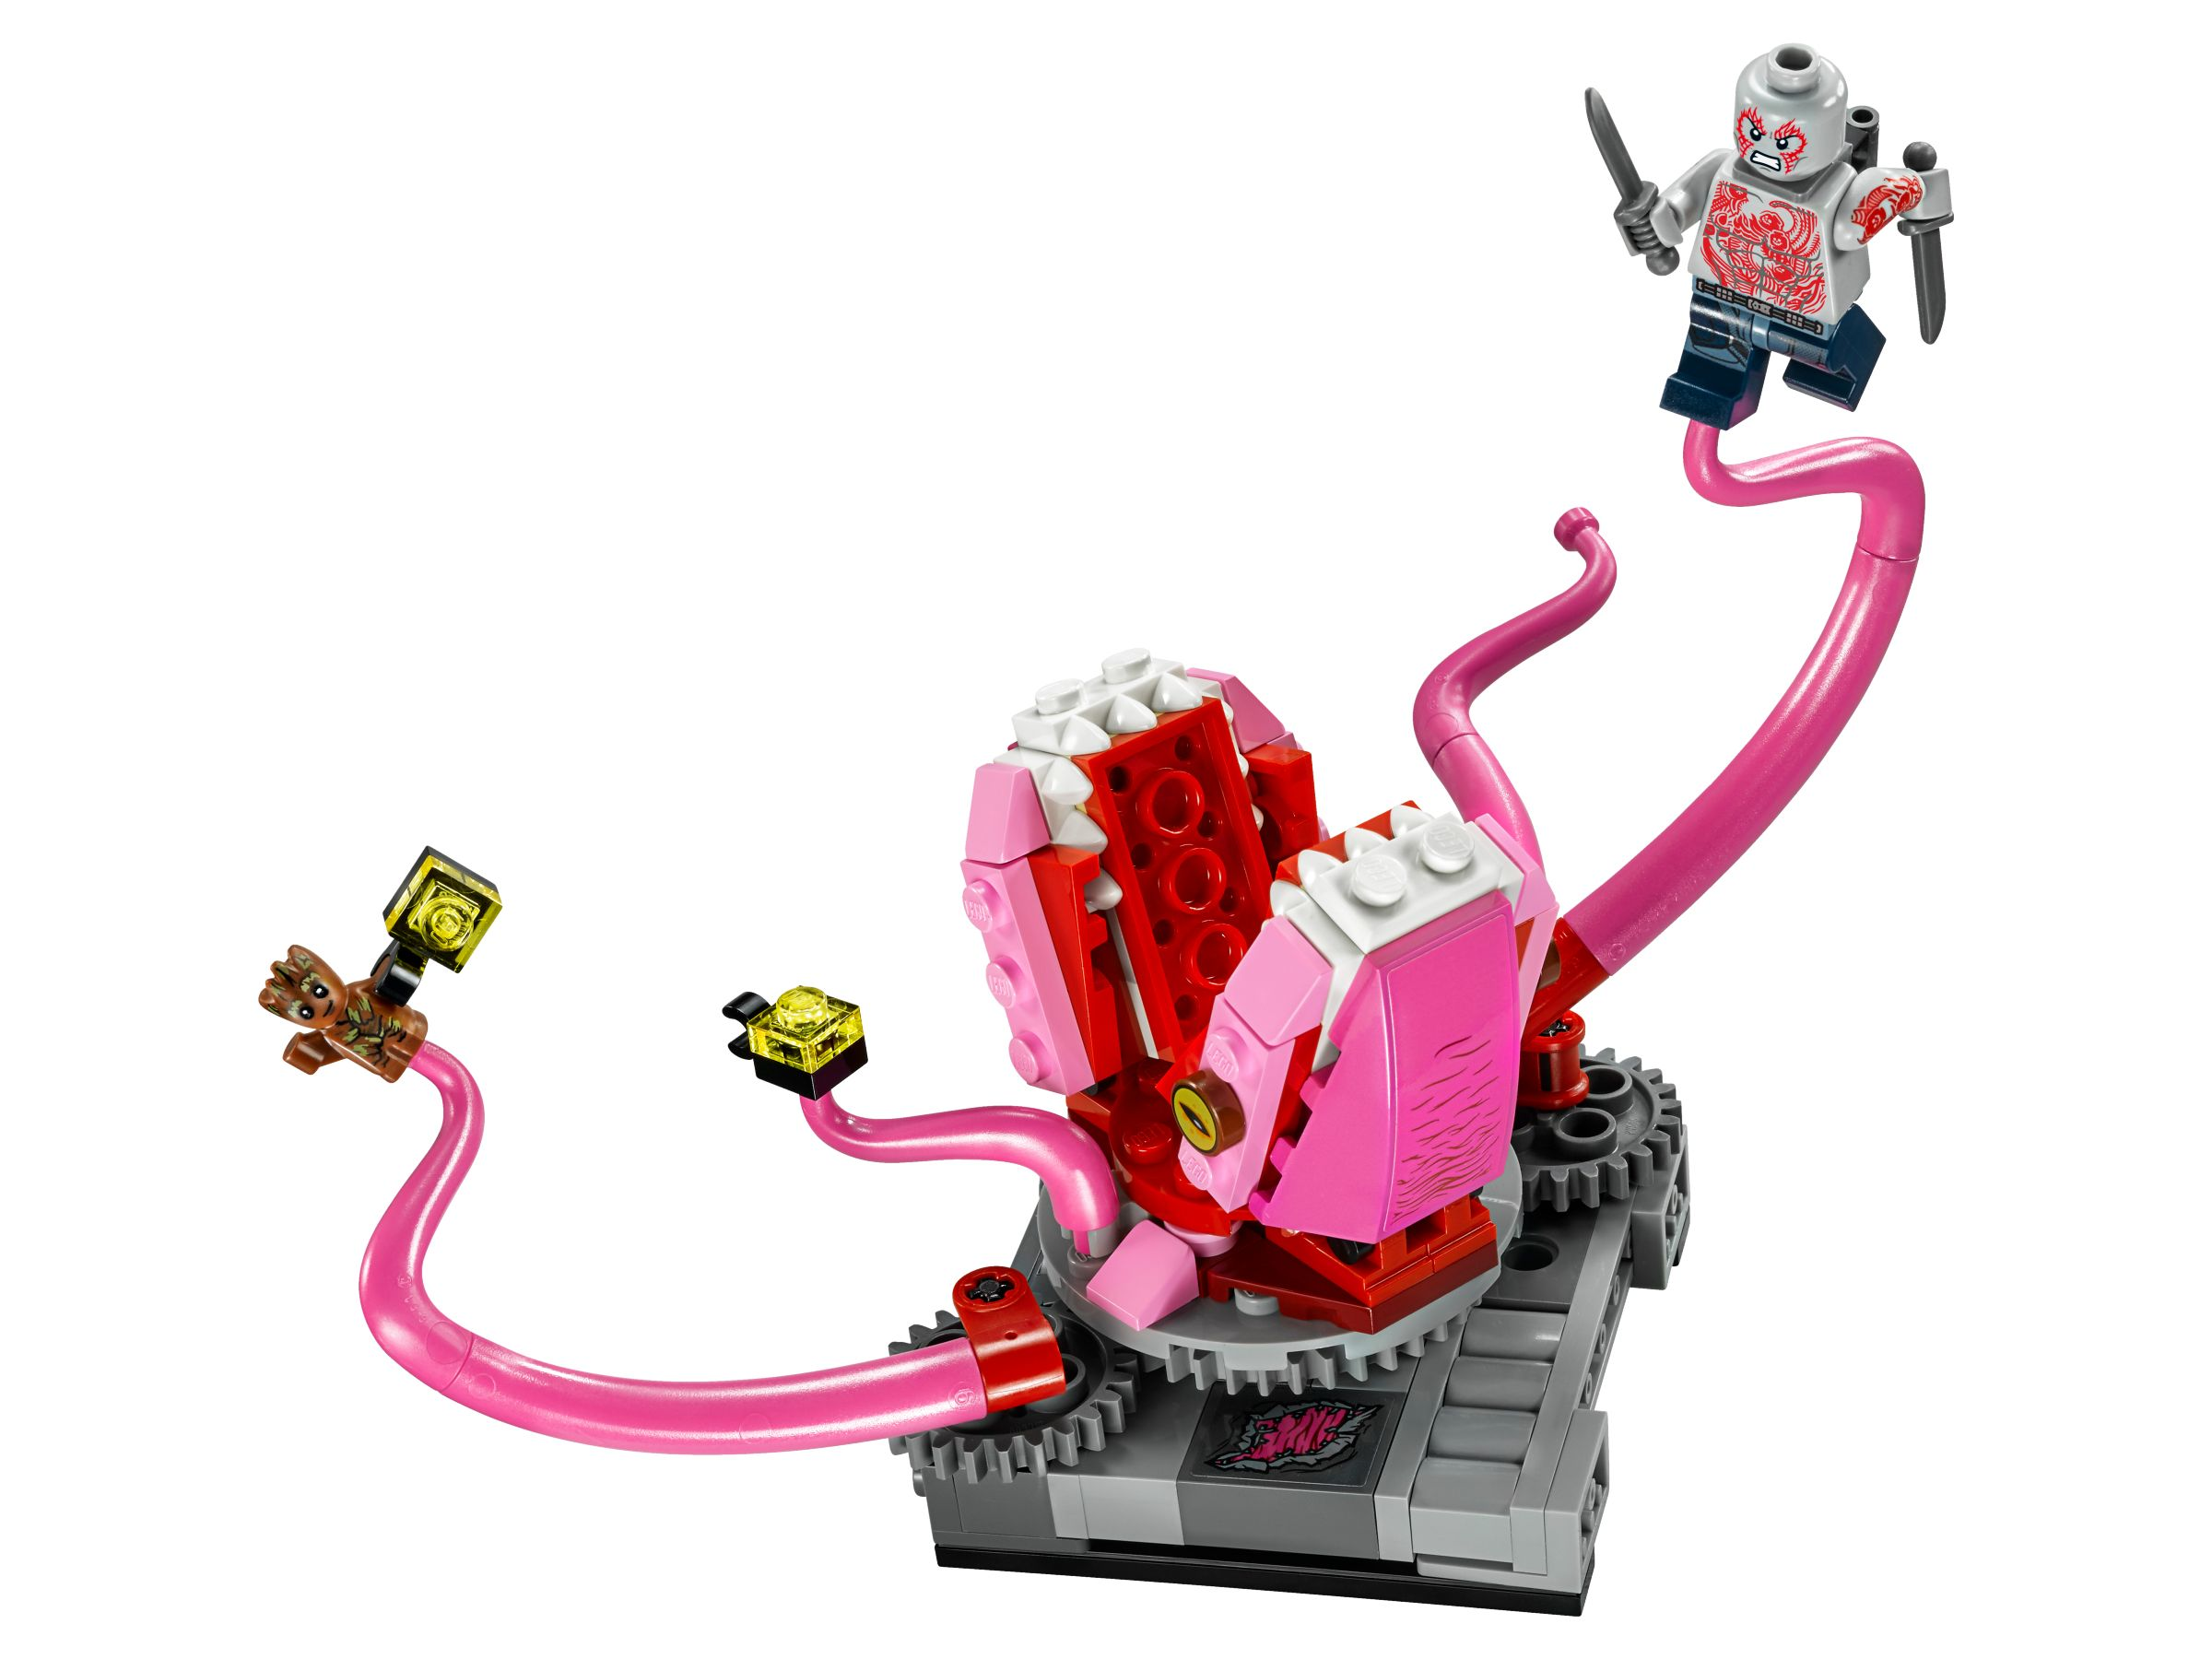 LEGO Super Heroes 76081 Guardians of the Galaxy - The Milano vs. The Abilisk LEGO_76081_alt5.jpg